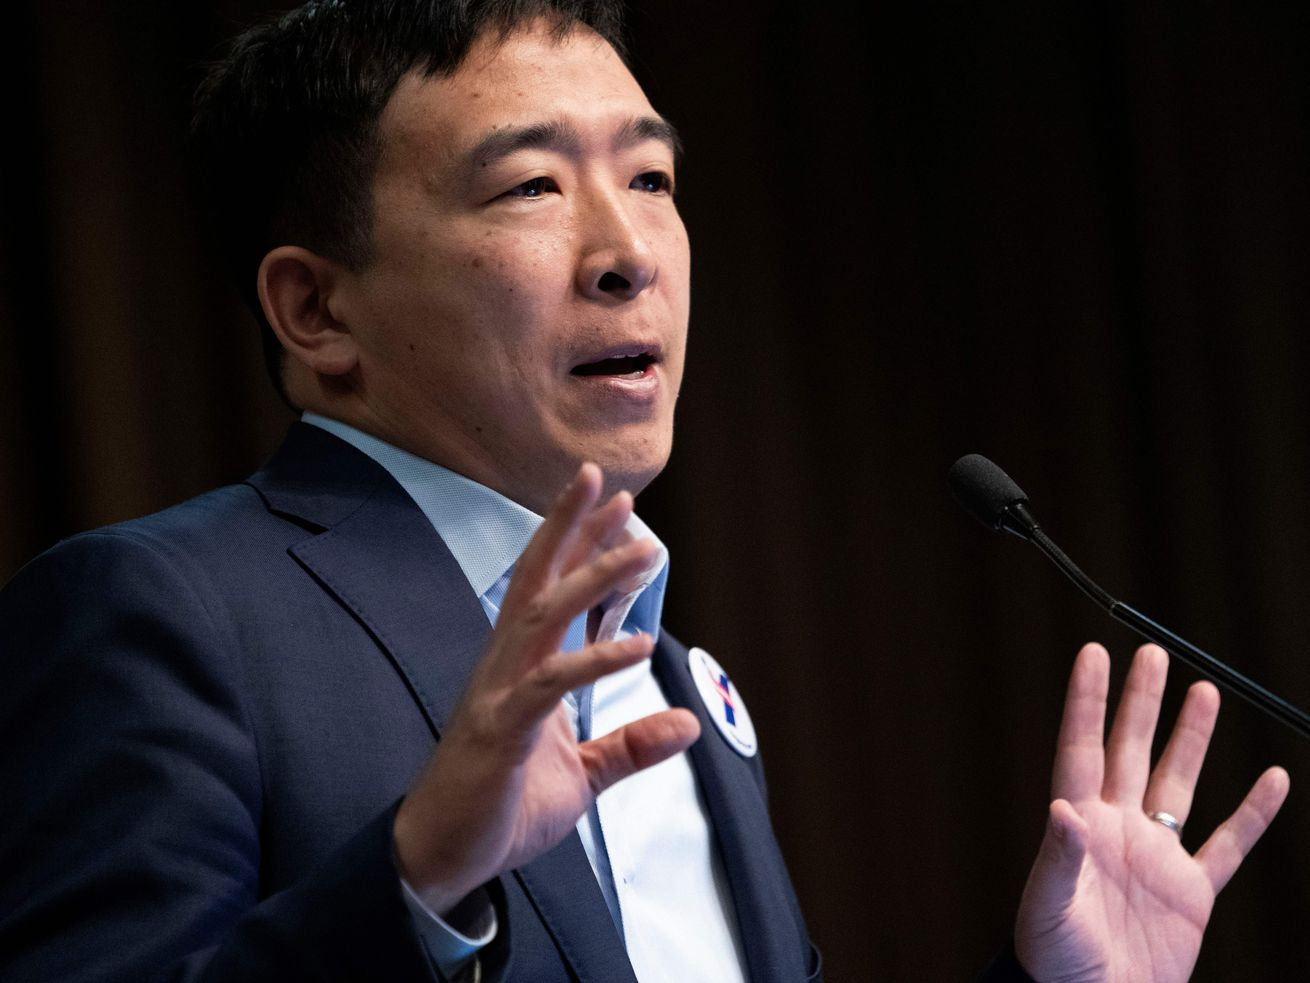 Democratic Presidential candidate Andrew Yang speaks during a gathering of the National Action Network on April 3, 2019 in New York.